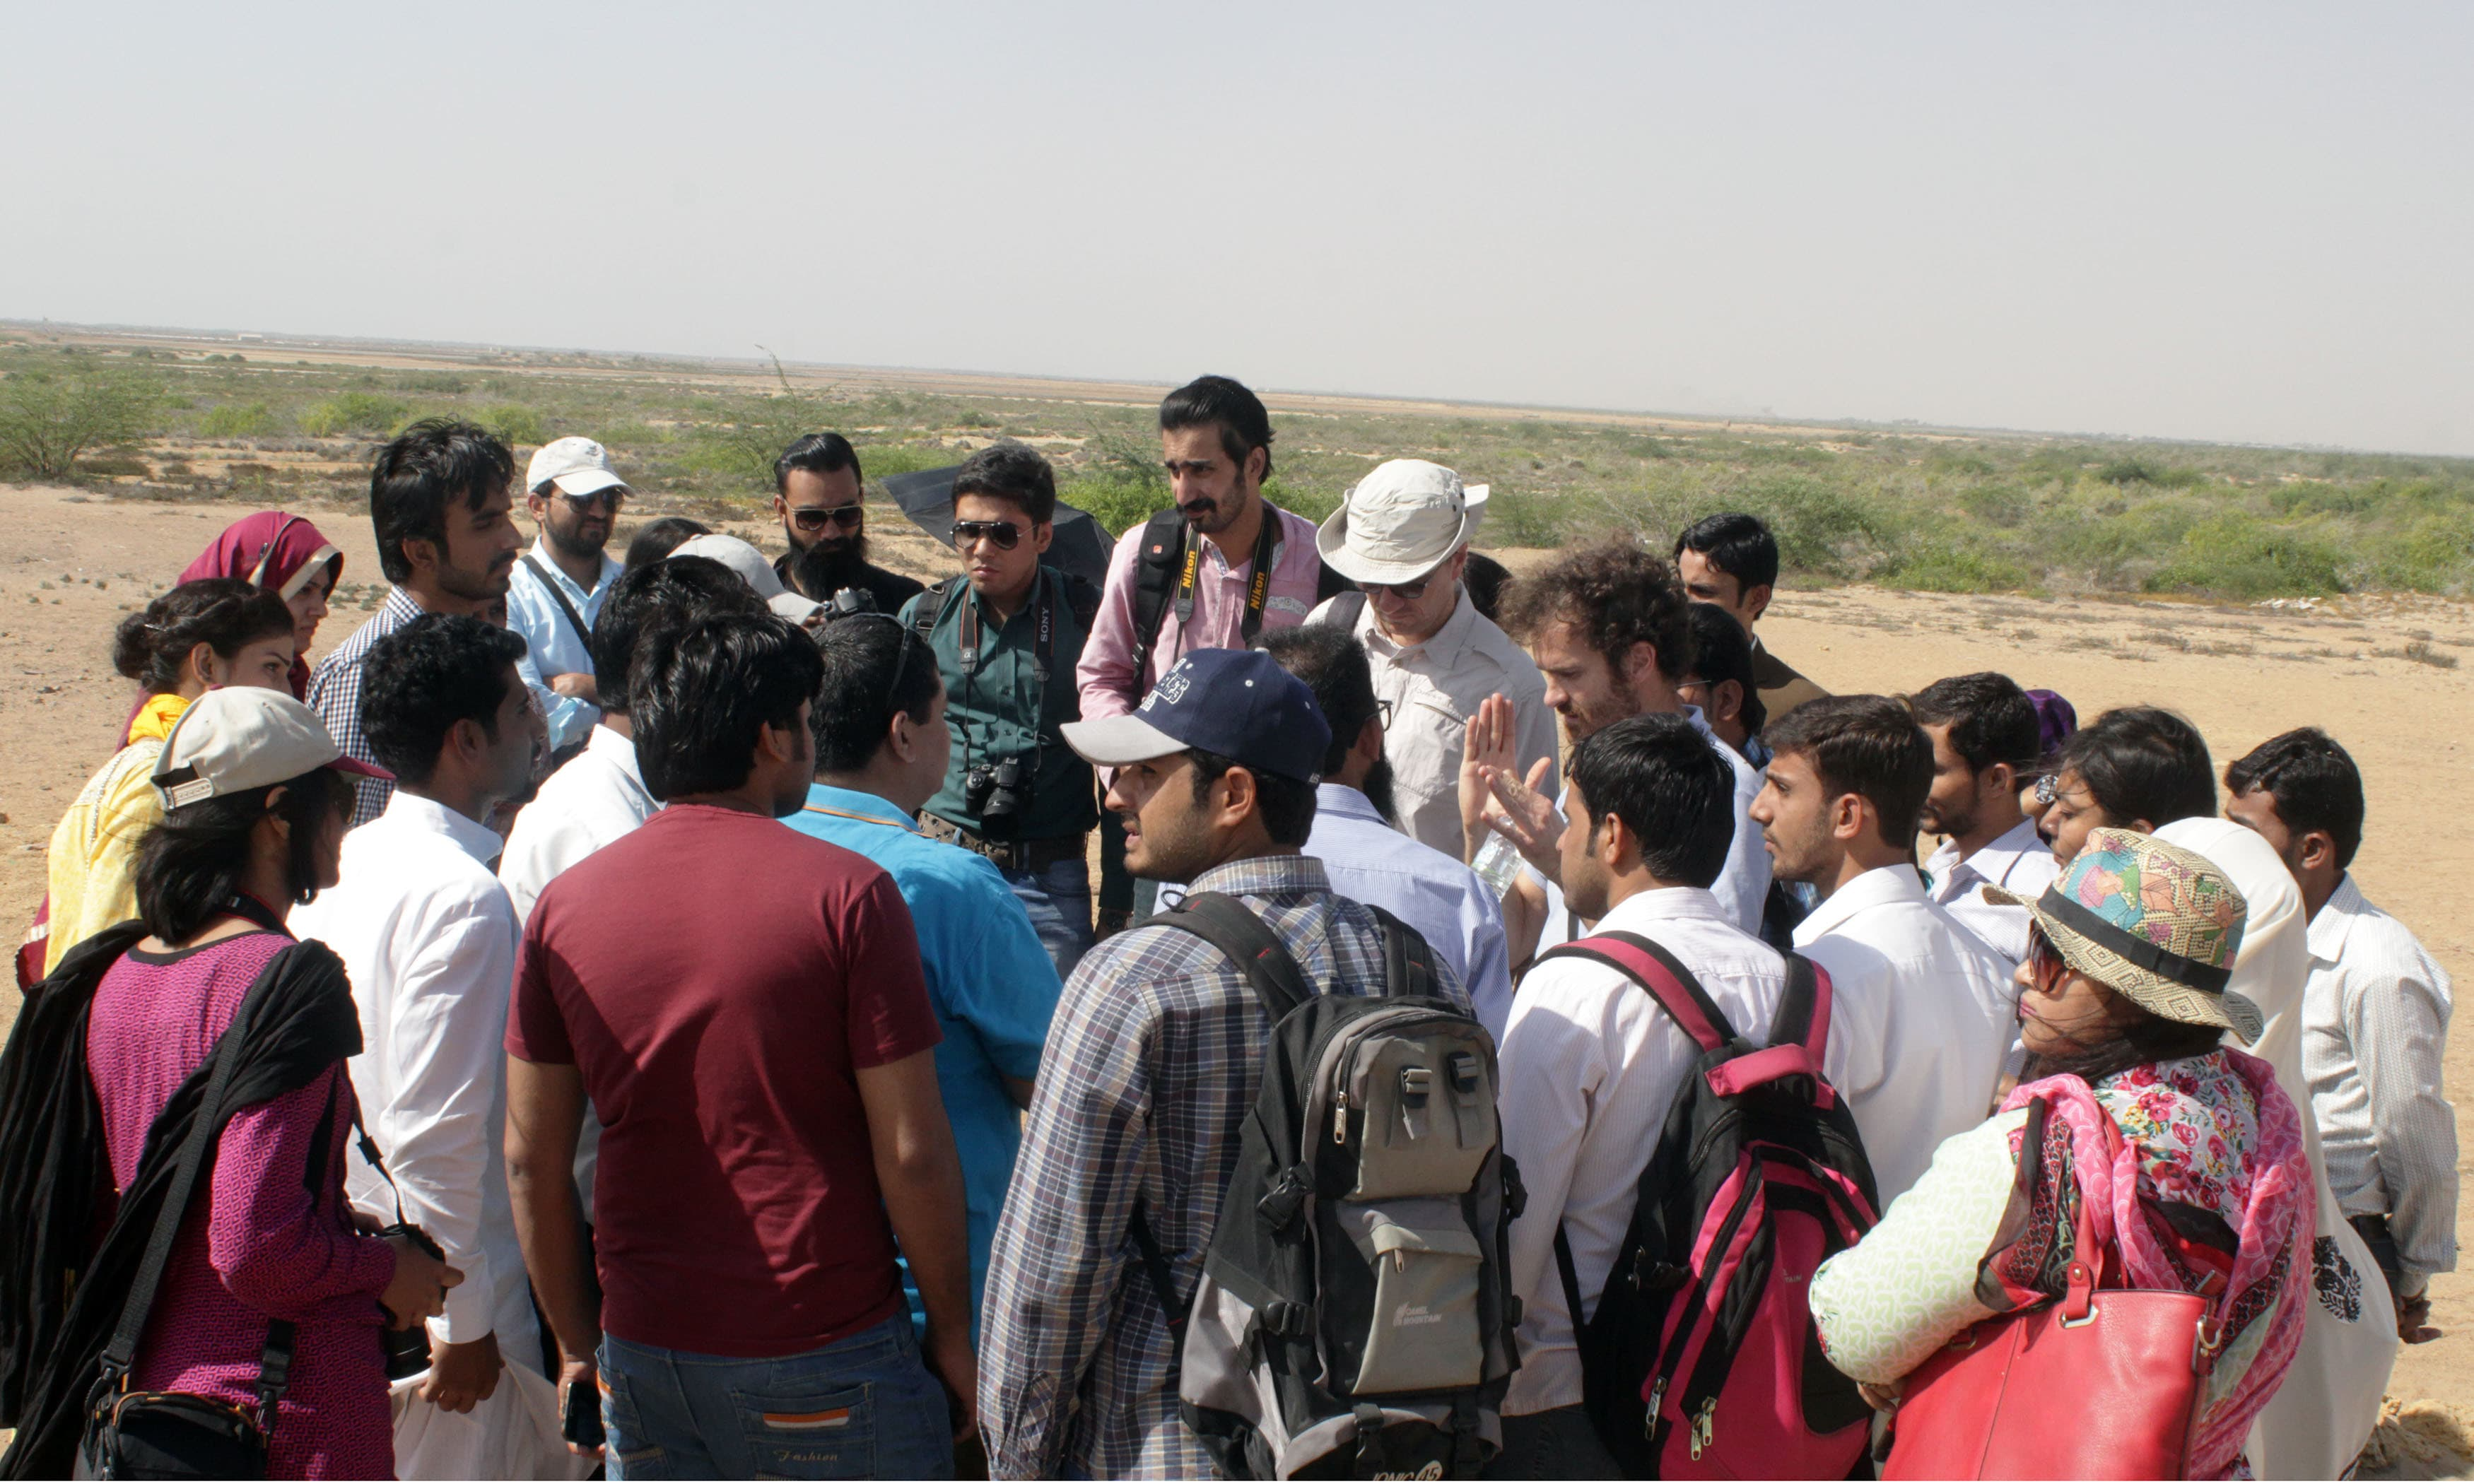 Italian archeological excavators brief students about the history on the ancient city. —Tauseef Mallick